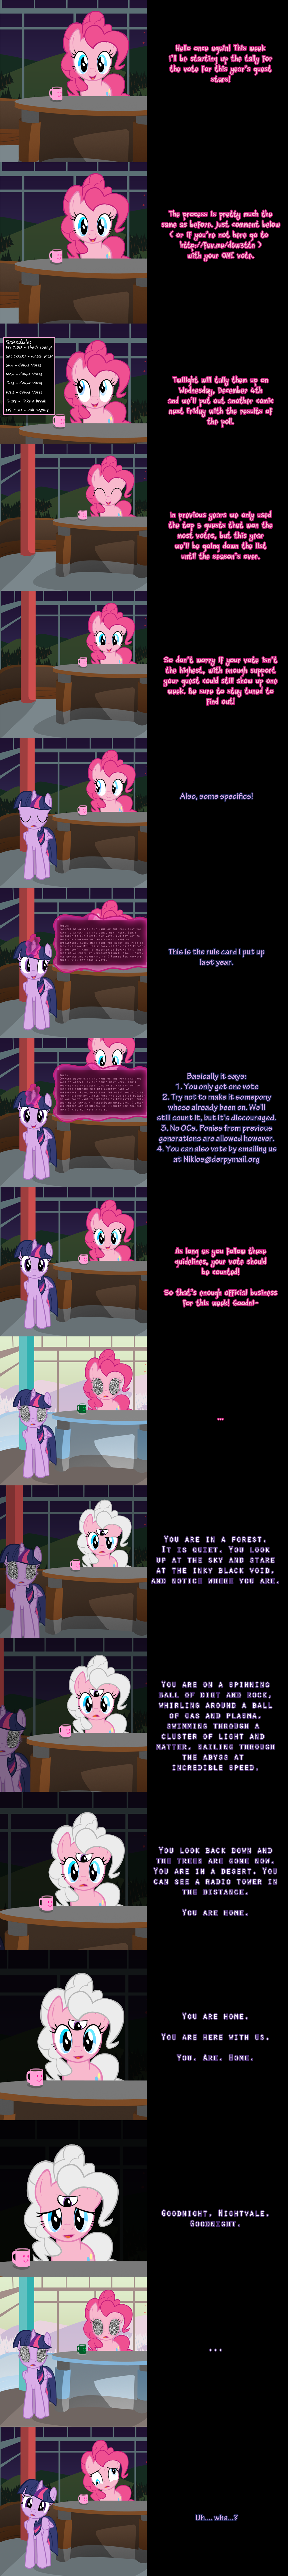 Pinkie Says Goodnight - Time to Vote! by Undead-Niklos